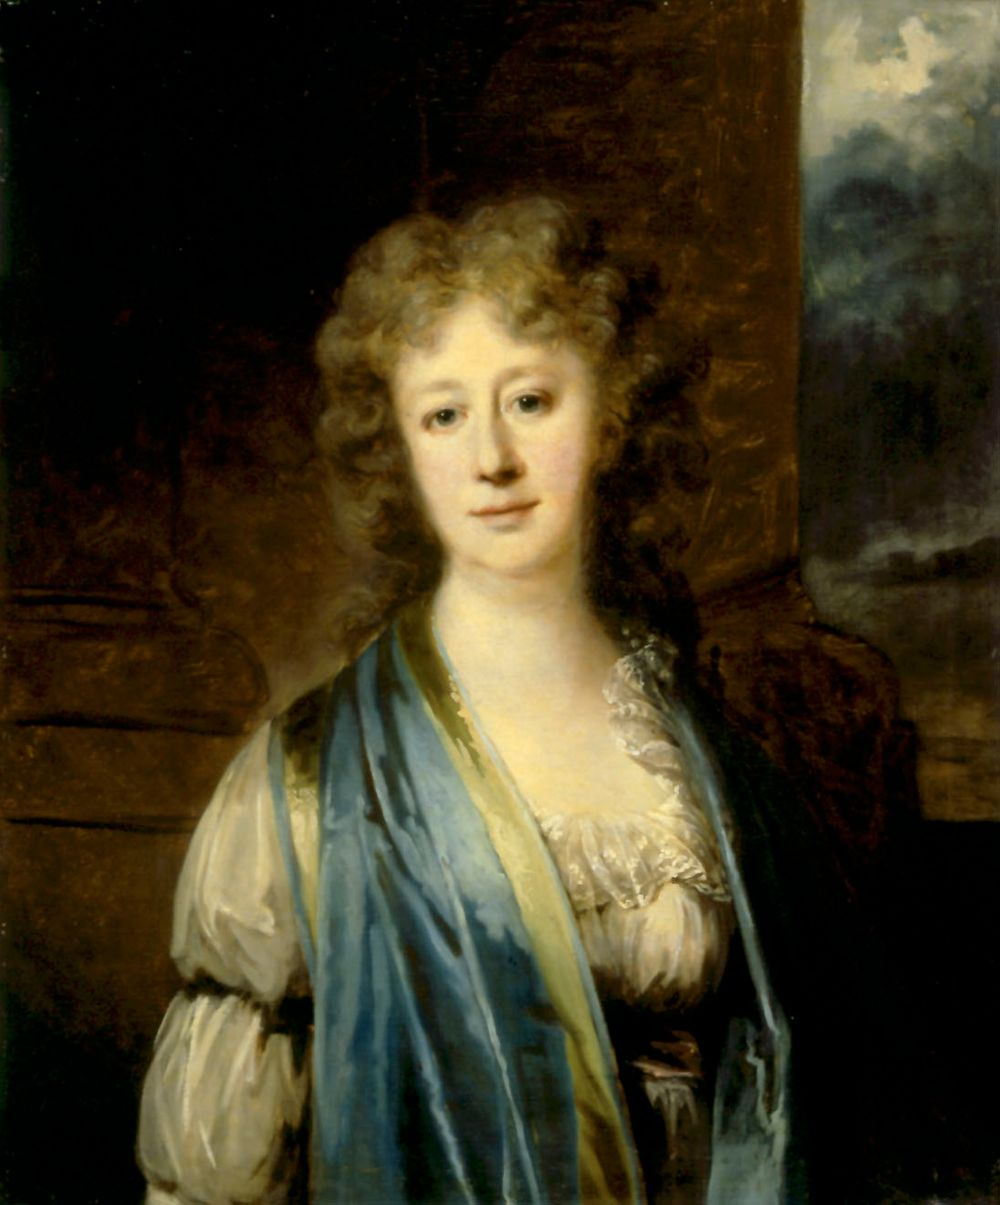 Countess Hedvig Eva de la Gardie